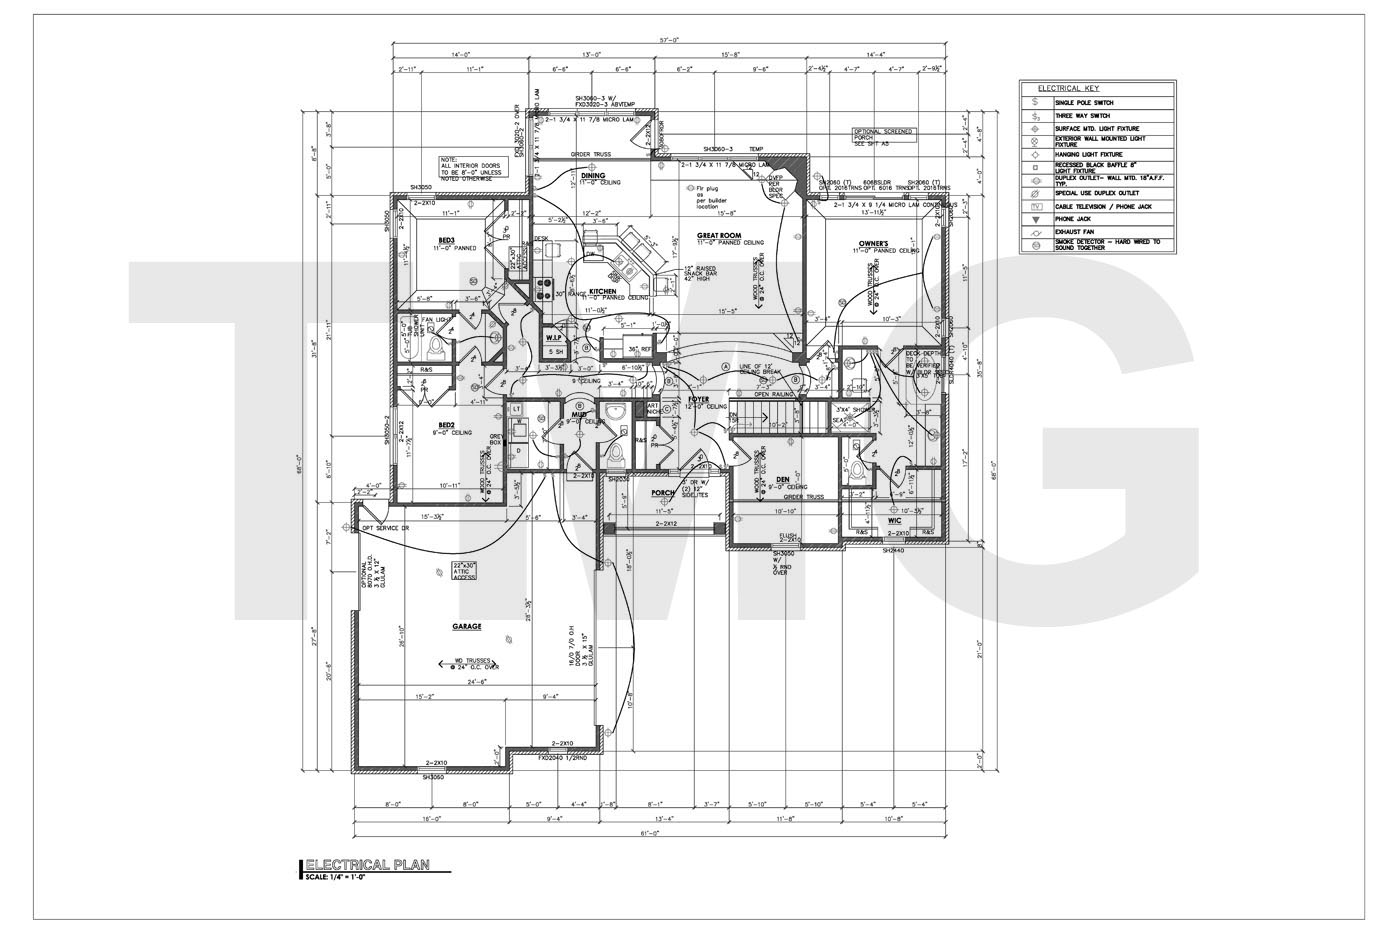 House plans drafting the magnum group tmg india for Blueprint house plans